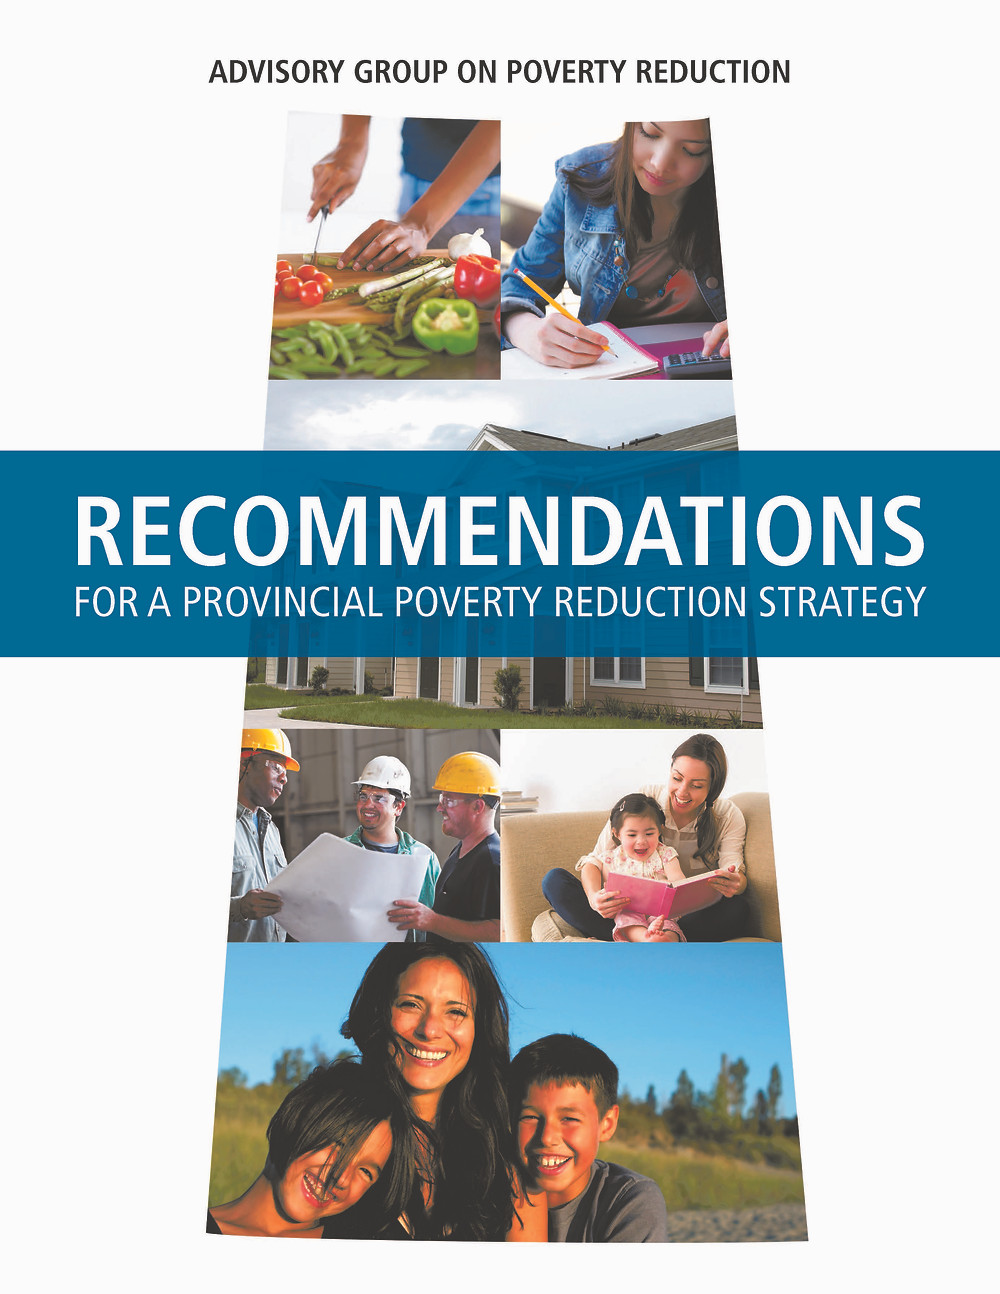 The report cover for the Advisory Group on Poverty Reduction.